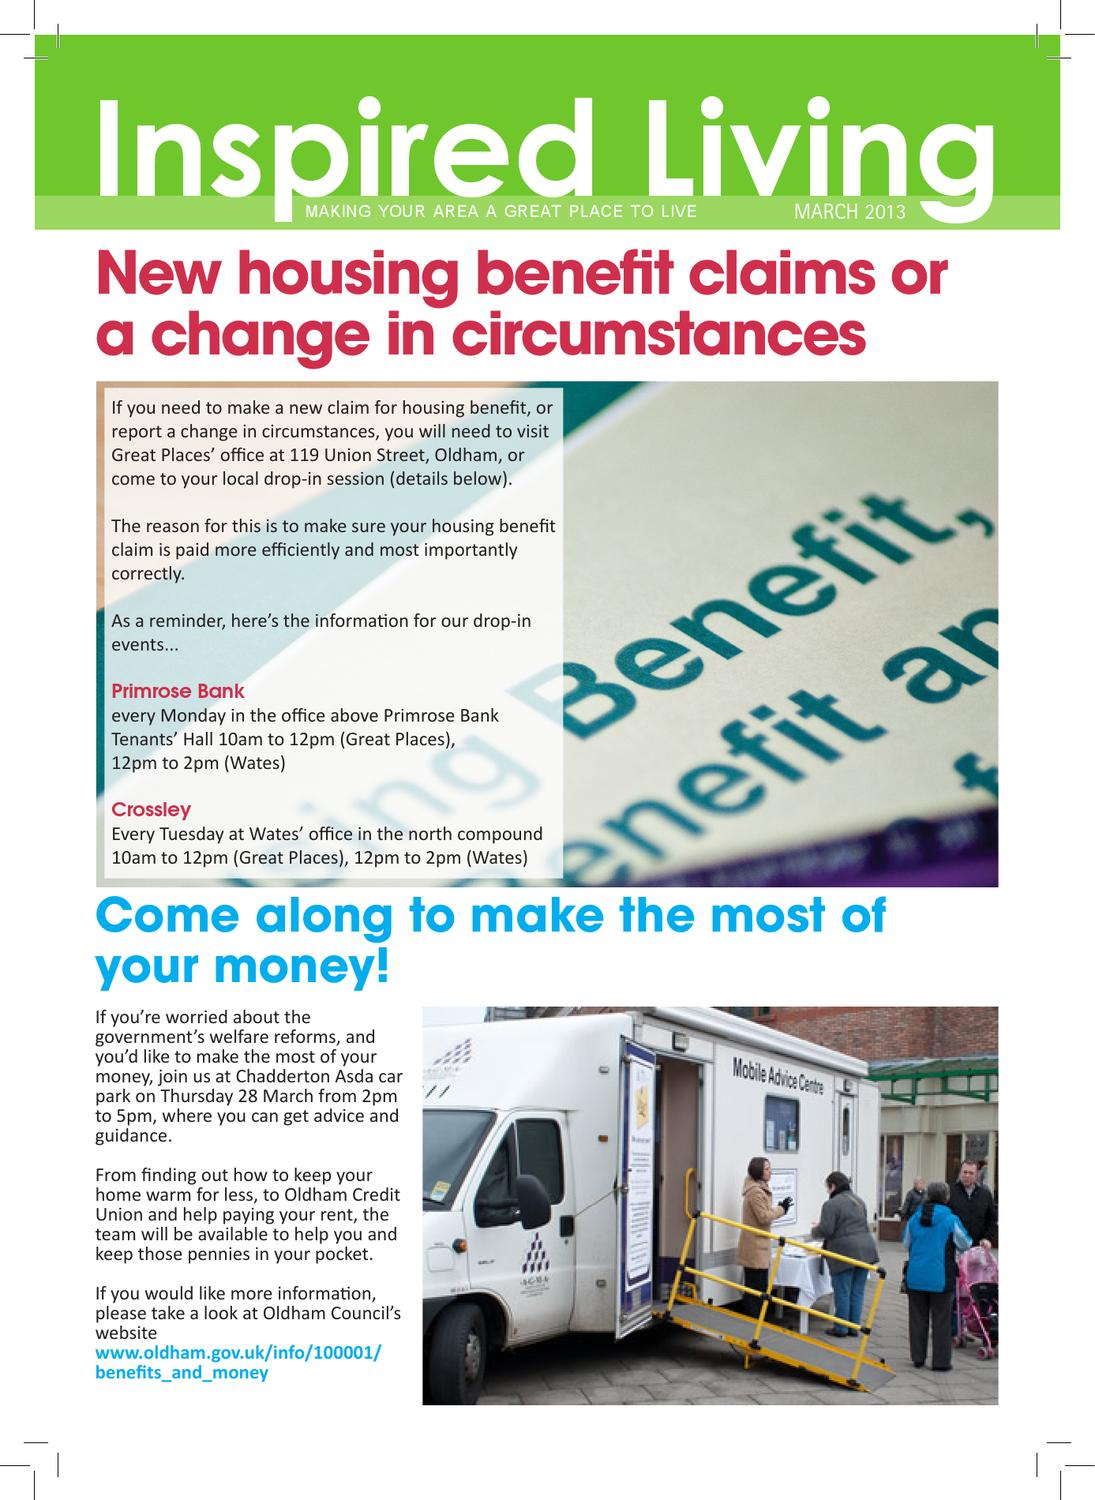 Inspired Living March 2013 By Great Places Housing Group